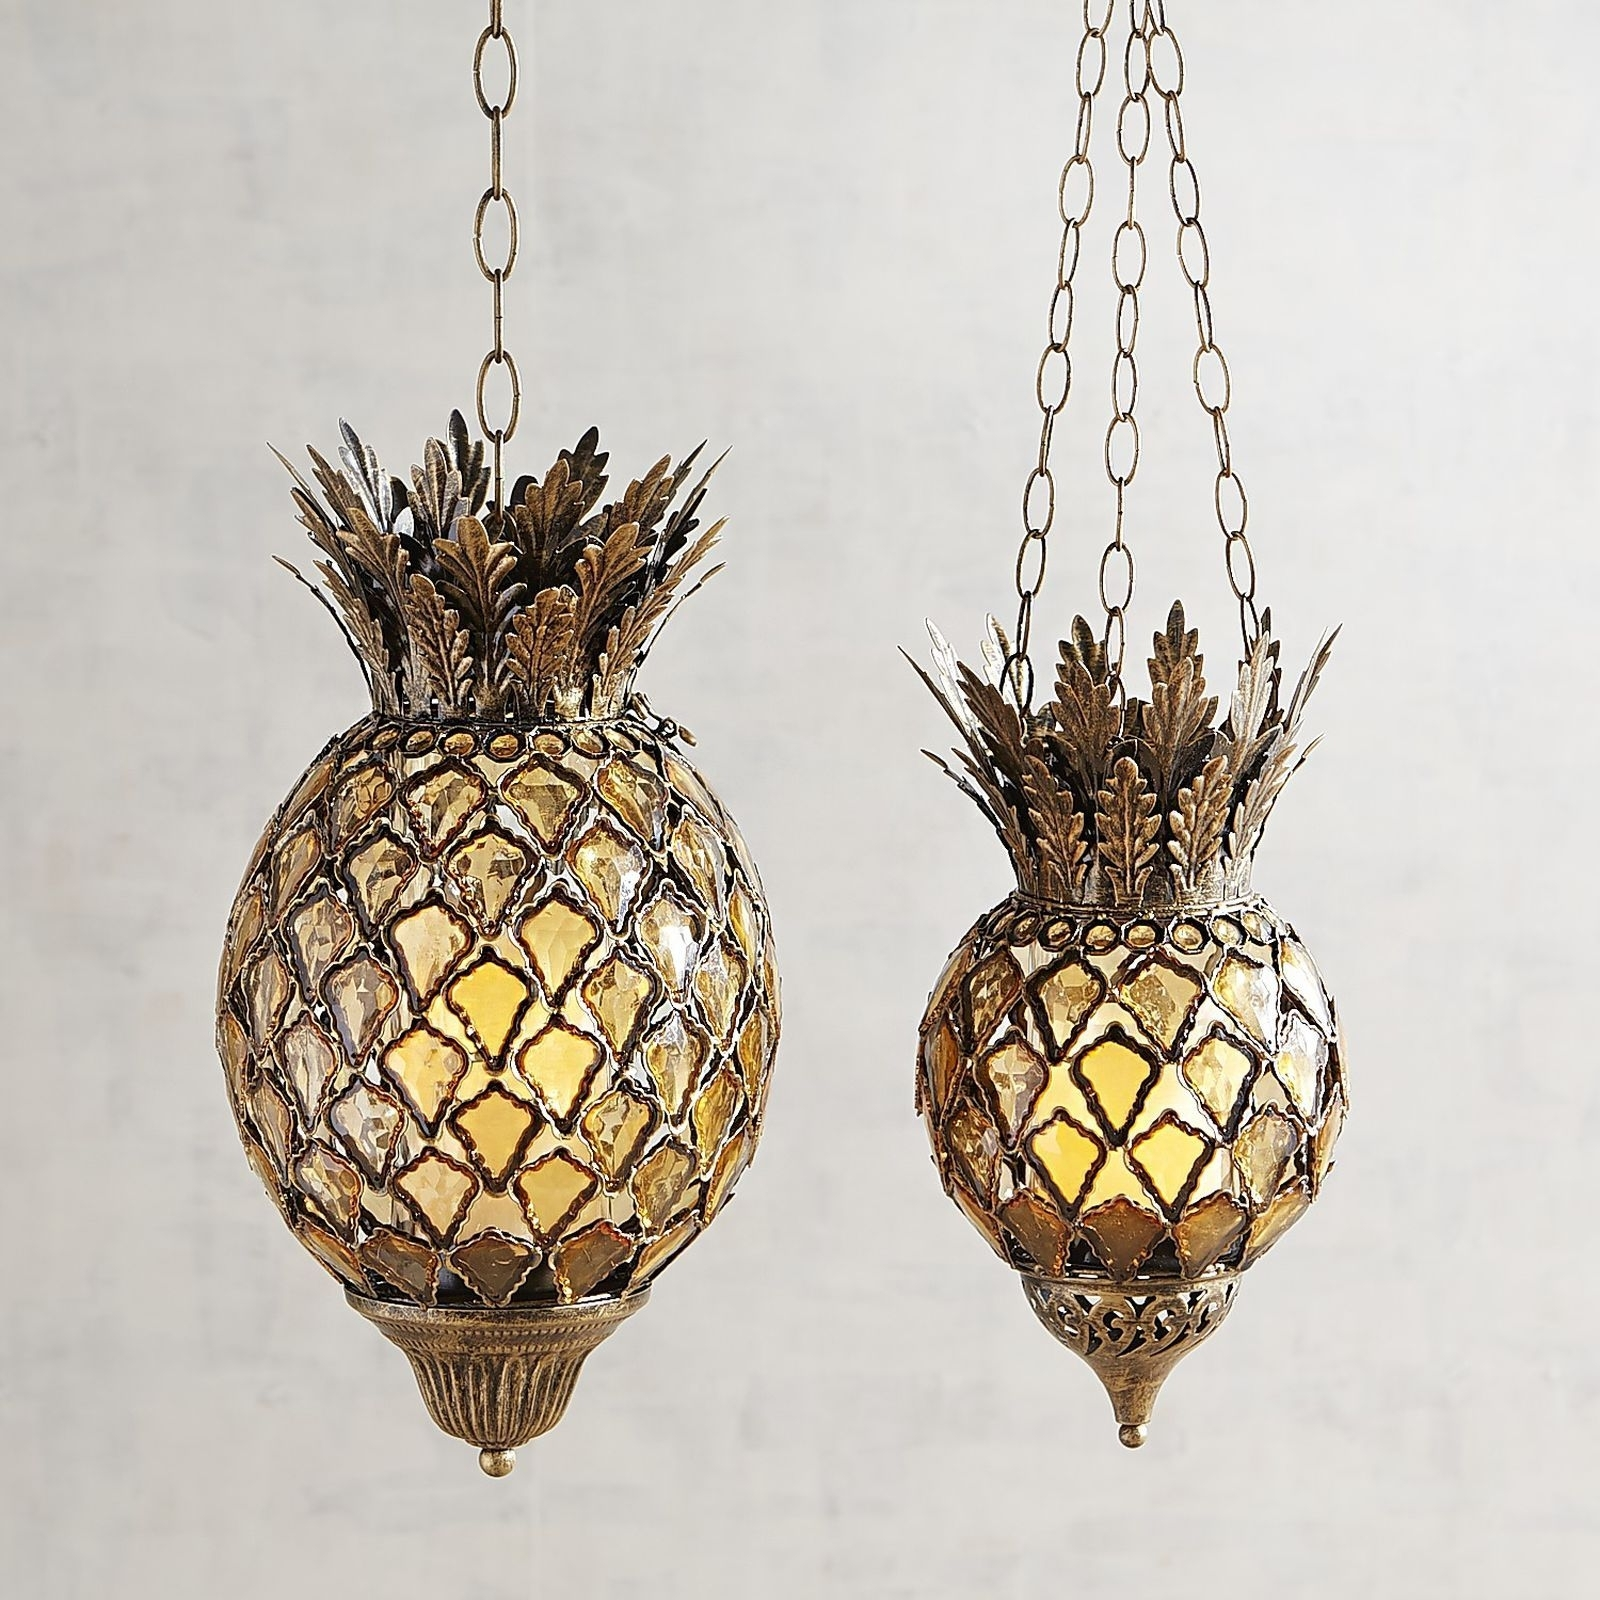 Pineapple Hanging Light Outdoor Fixtures Bling Gem Boho Lantern within Outdoor Pineapple Lanterns (Image 14 of 20)